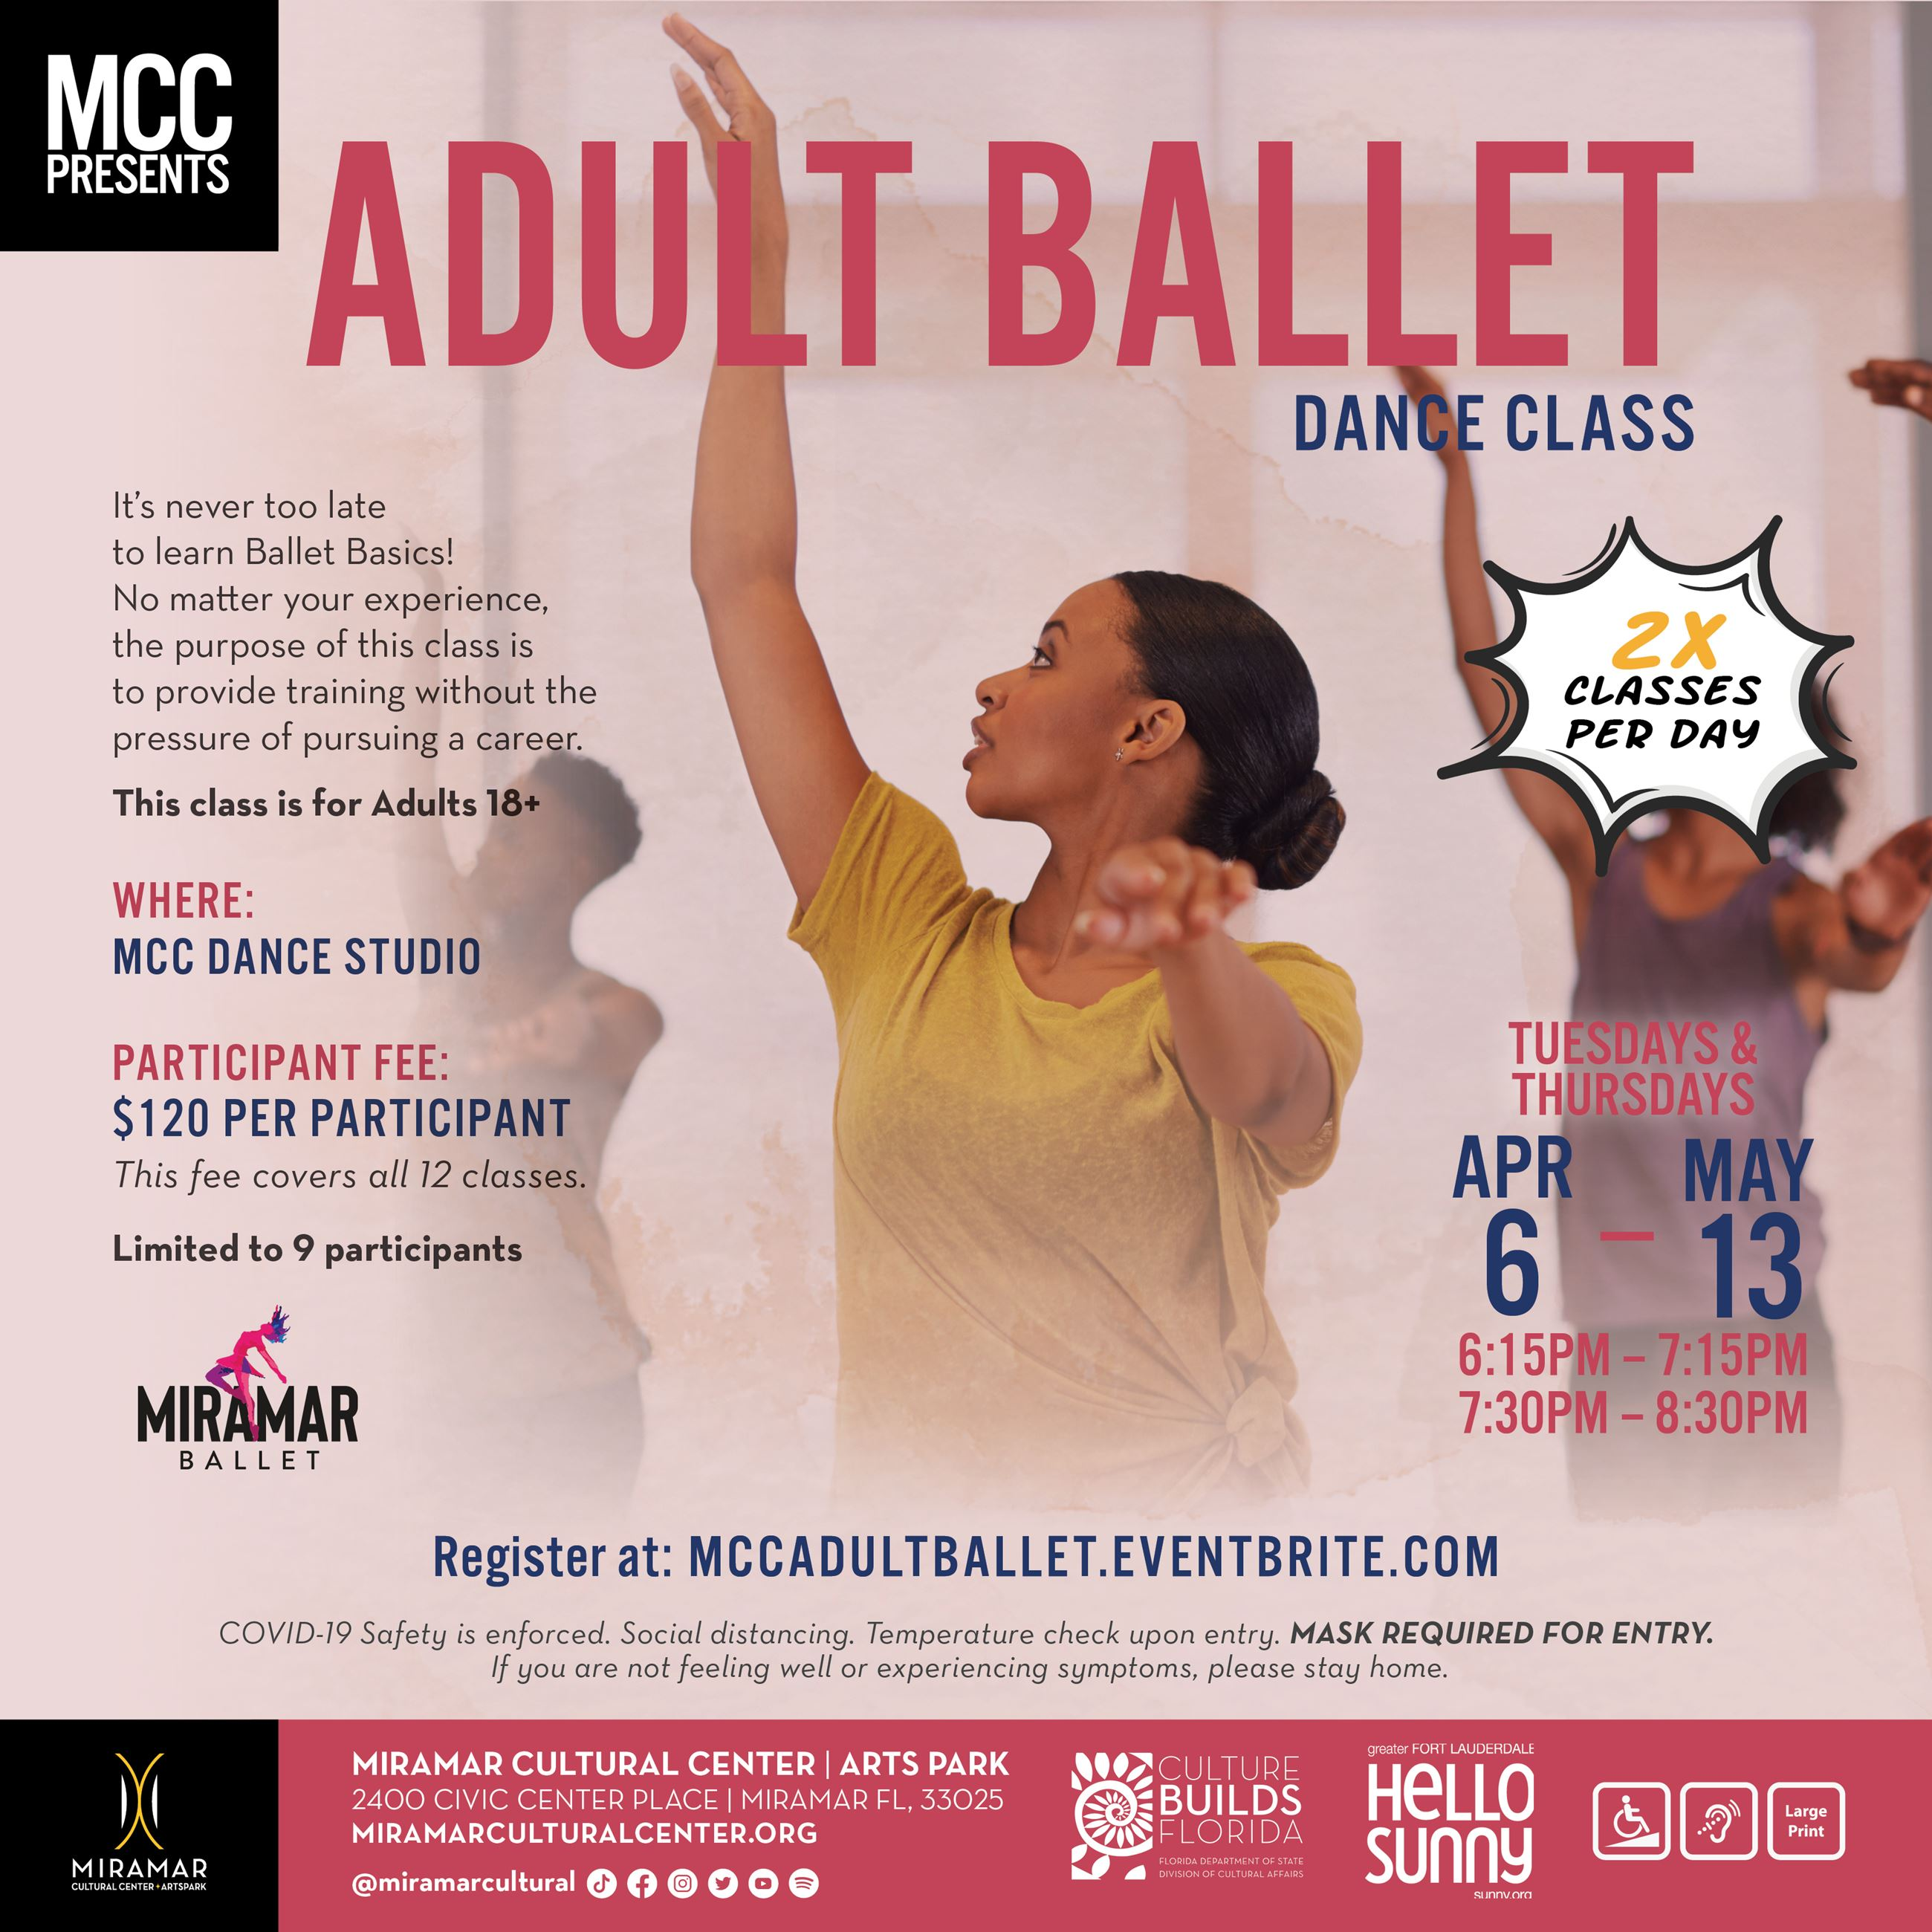 MCCpresents-BalletClass-800x800